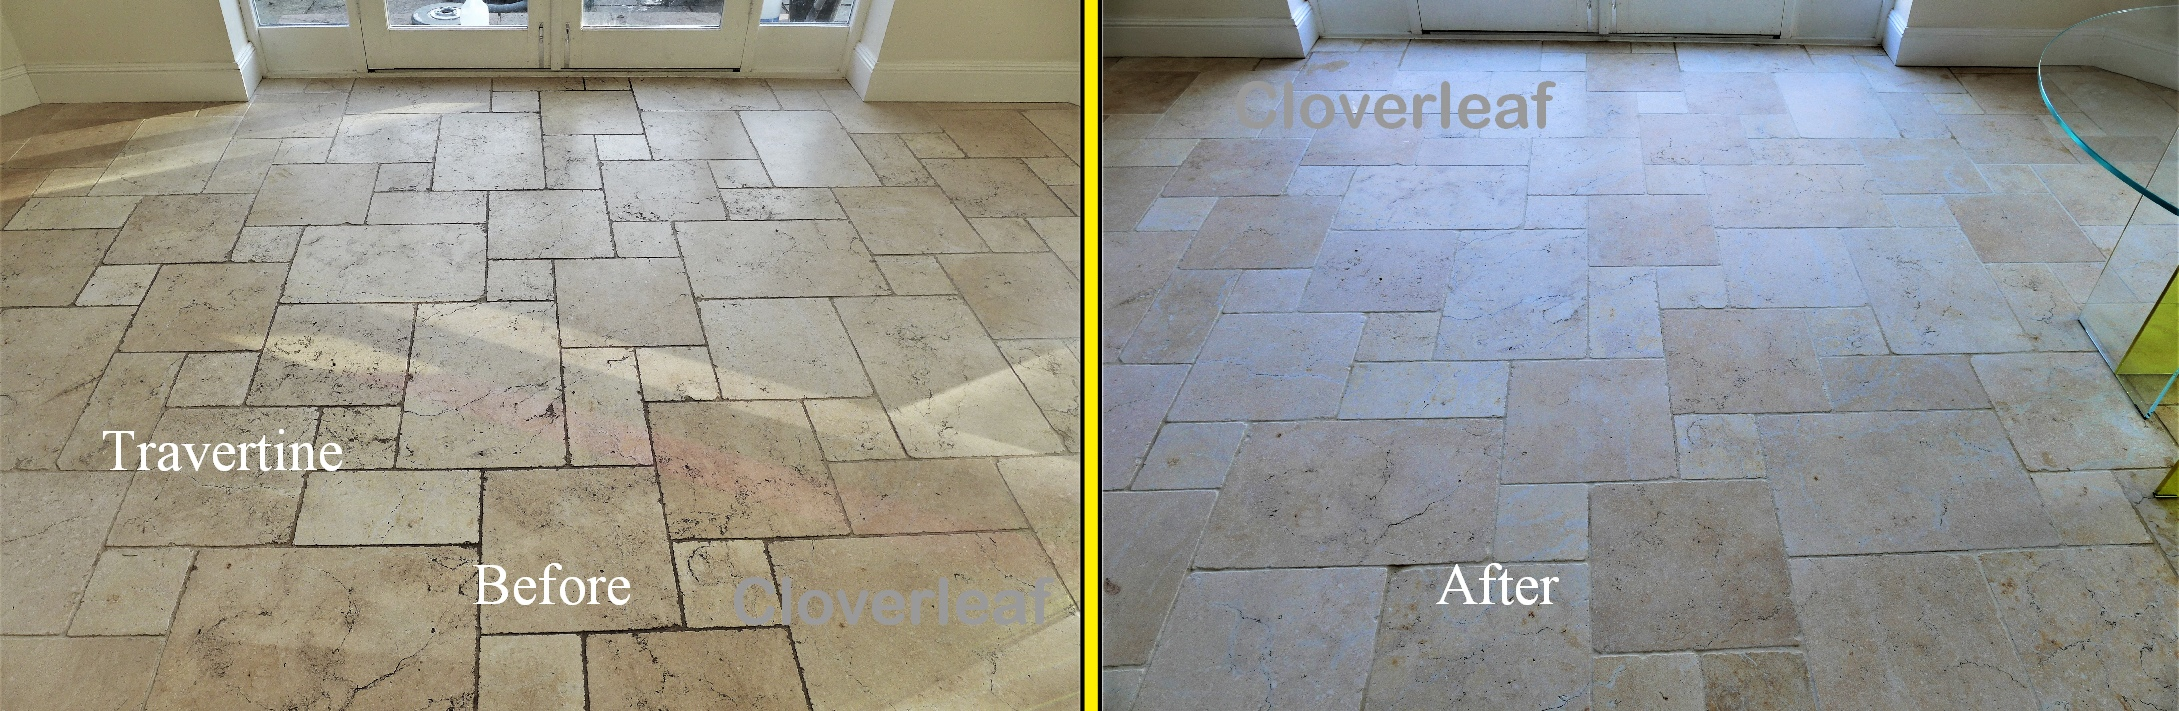 Travertine stone tiles cleaned in Cheshire